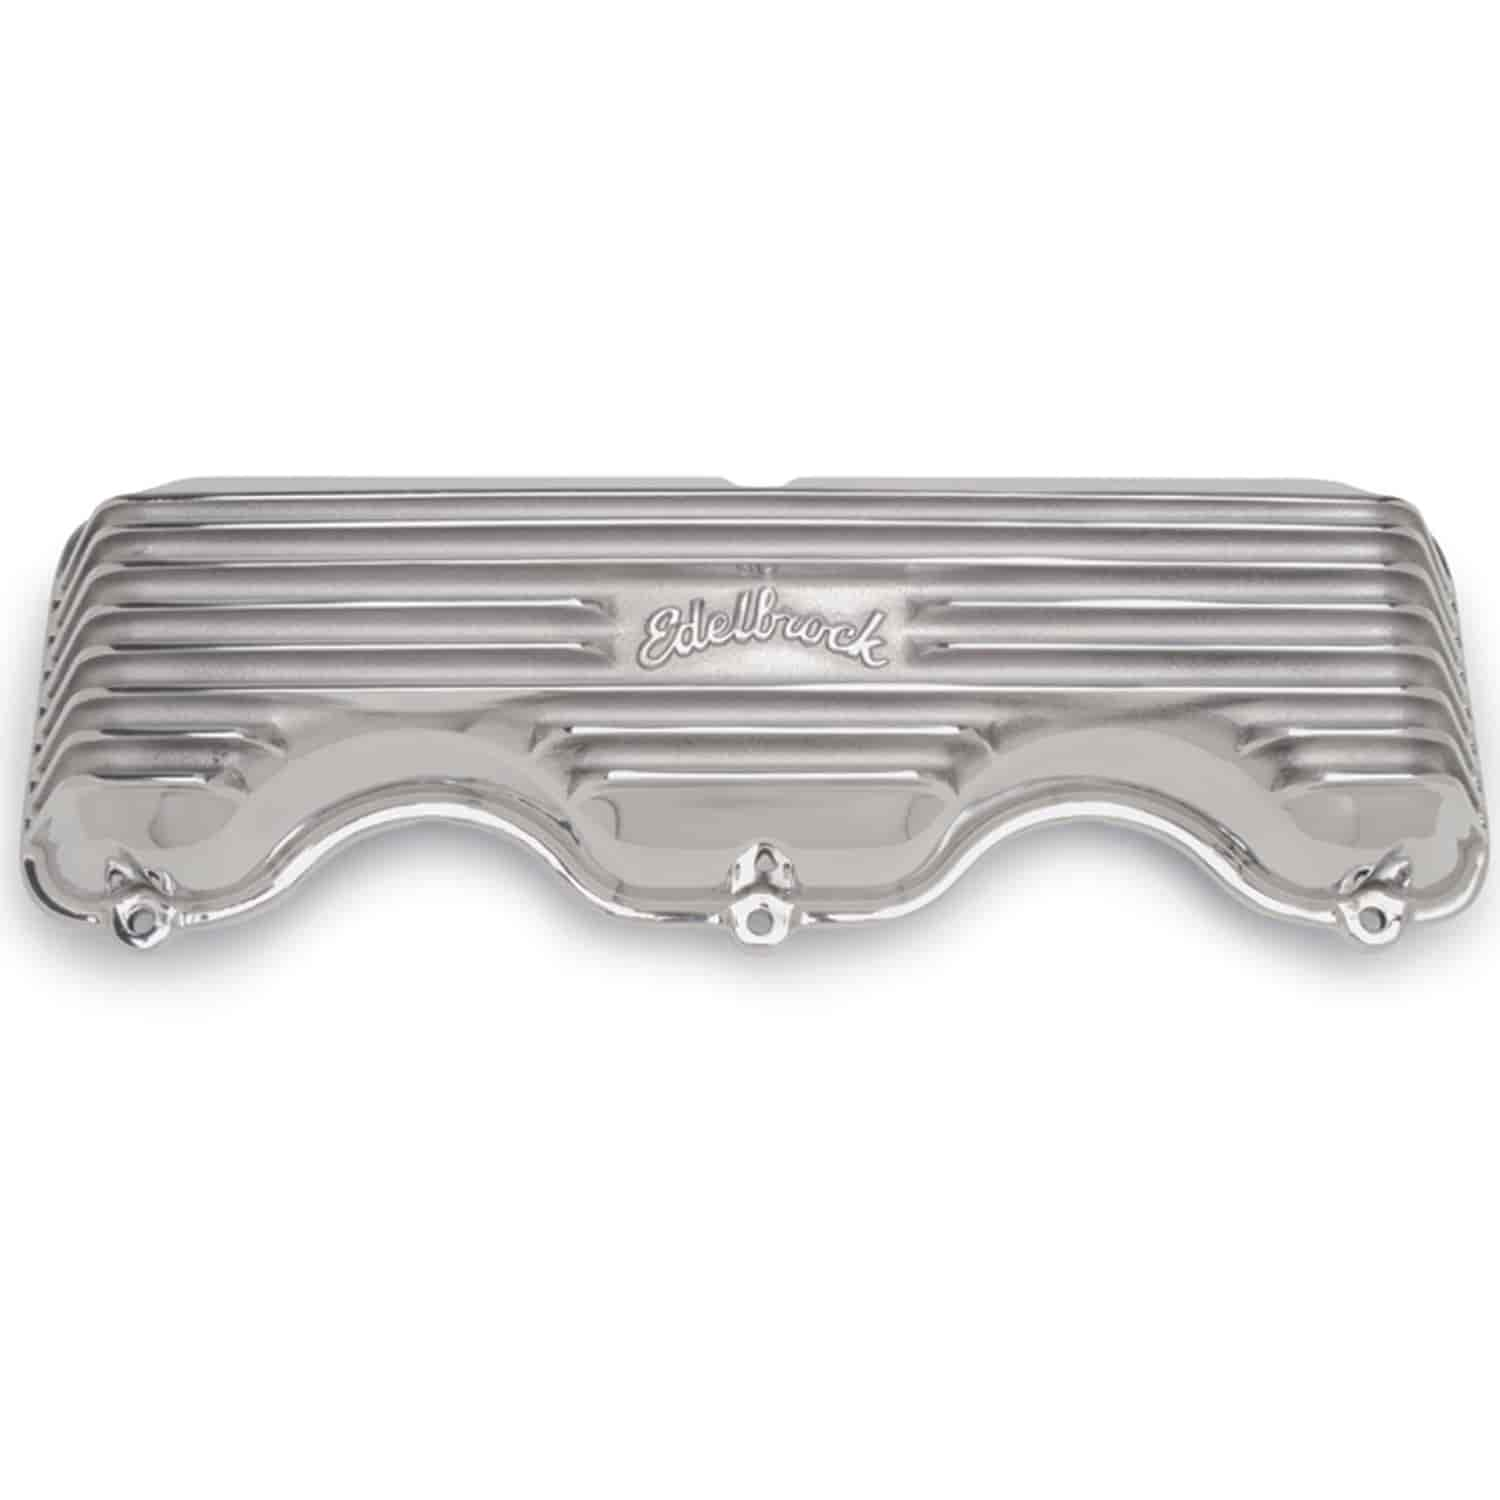 Edelbrock 4140 - Edelbrock Classic Series Valve Covers & Air Cleaners